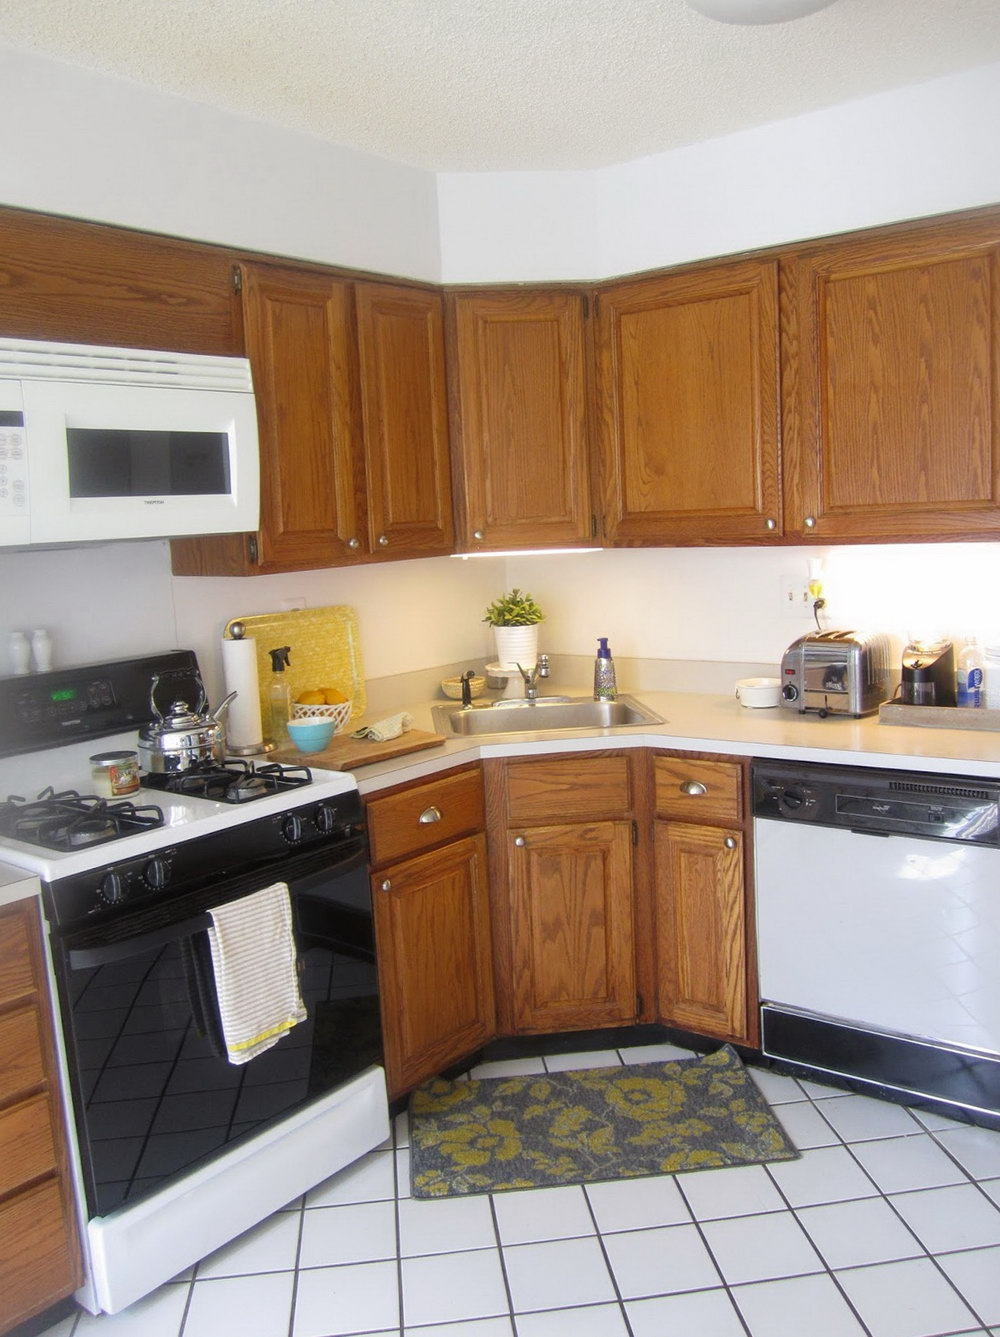 How To Restain Kitchen Cabinets Video